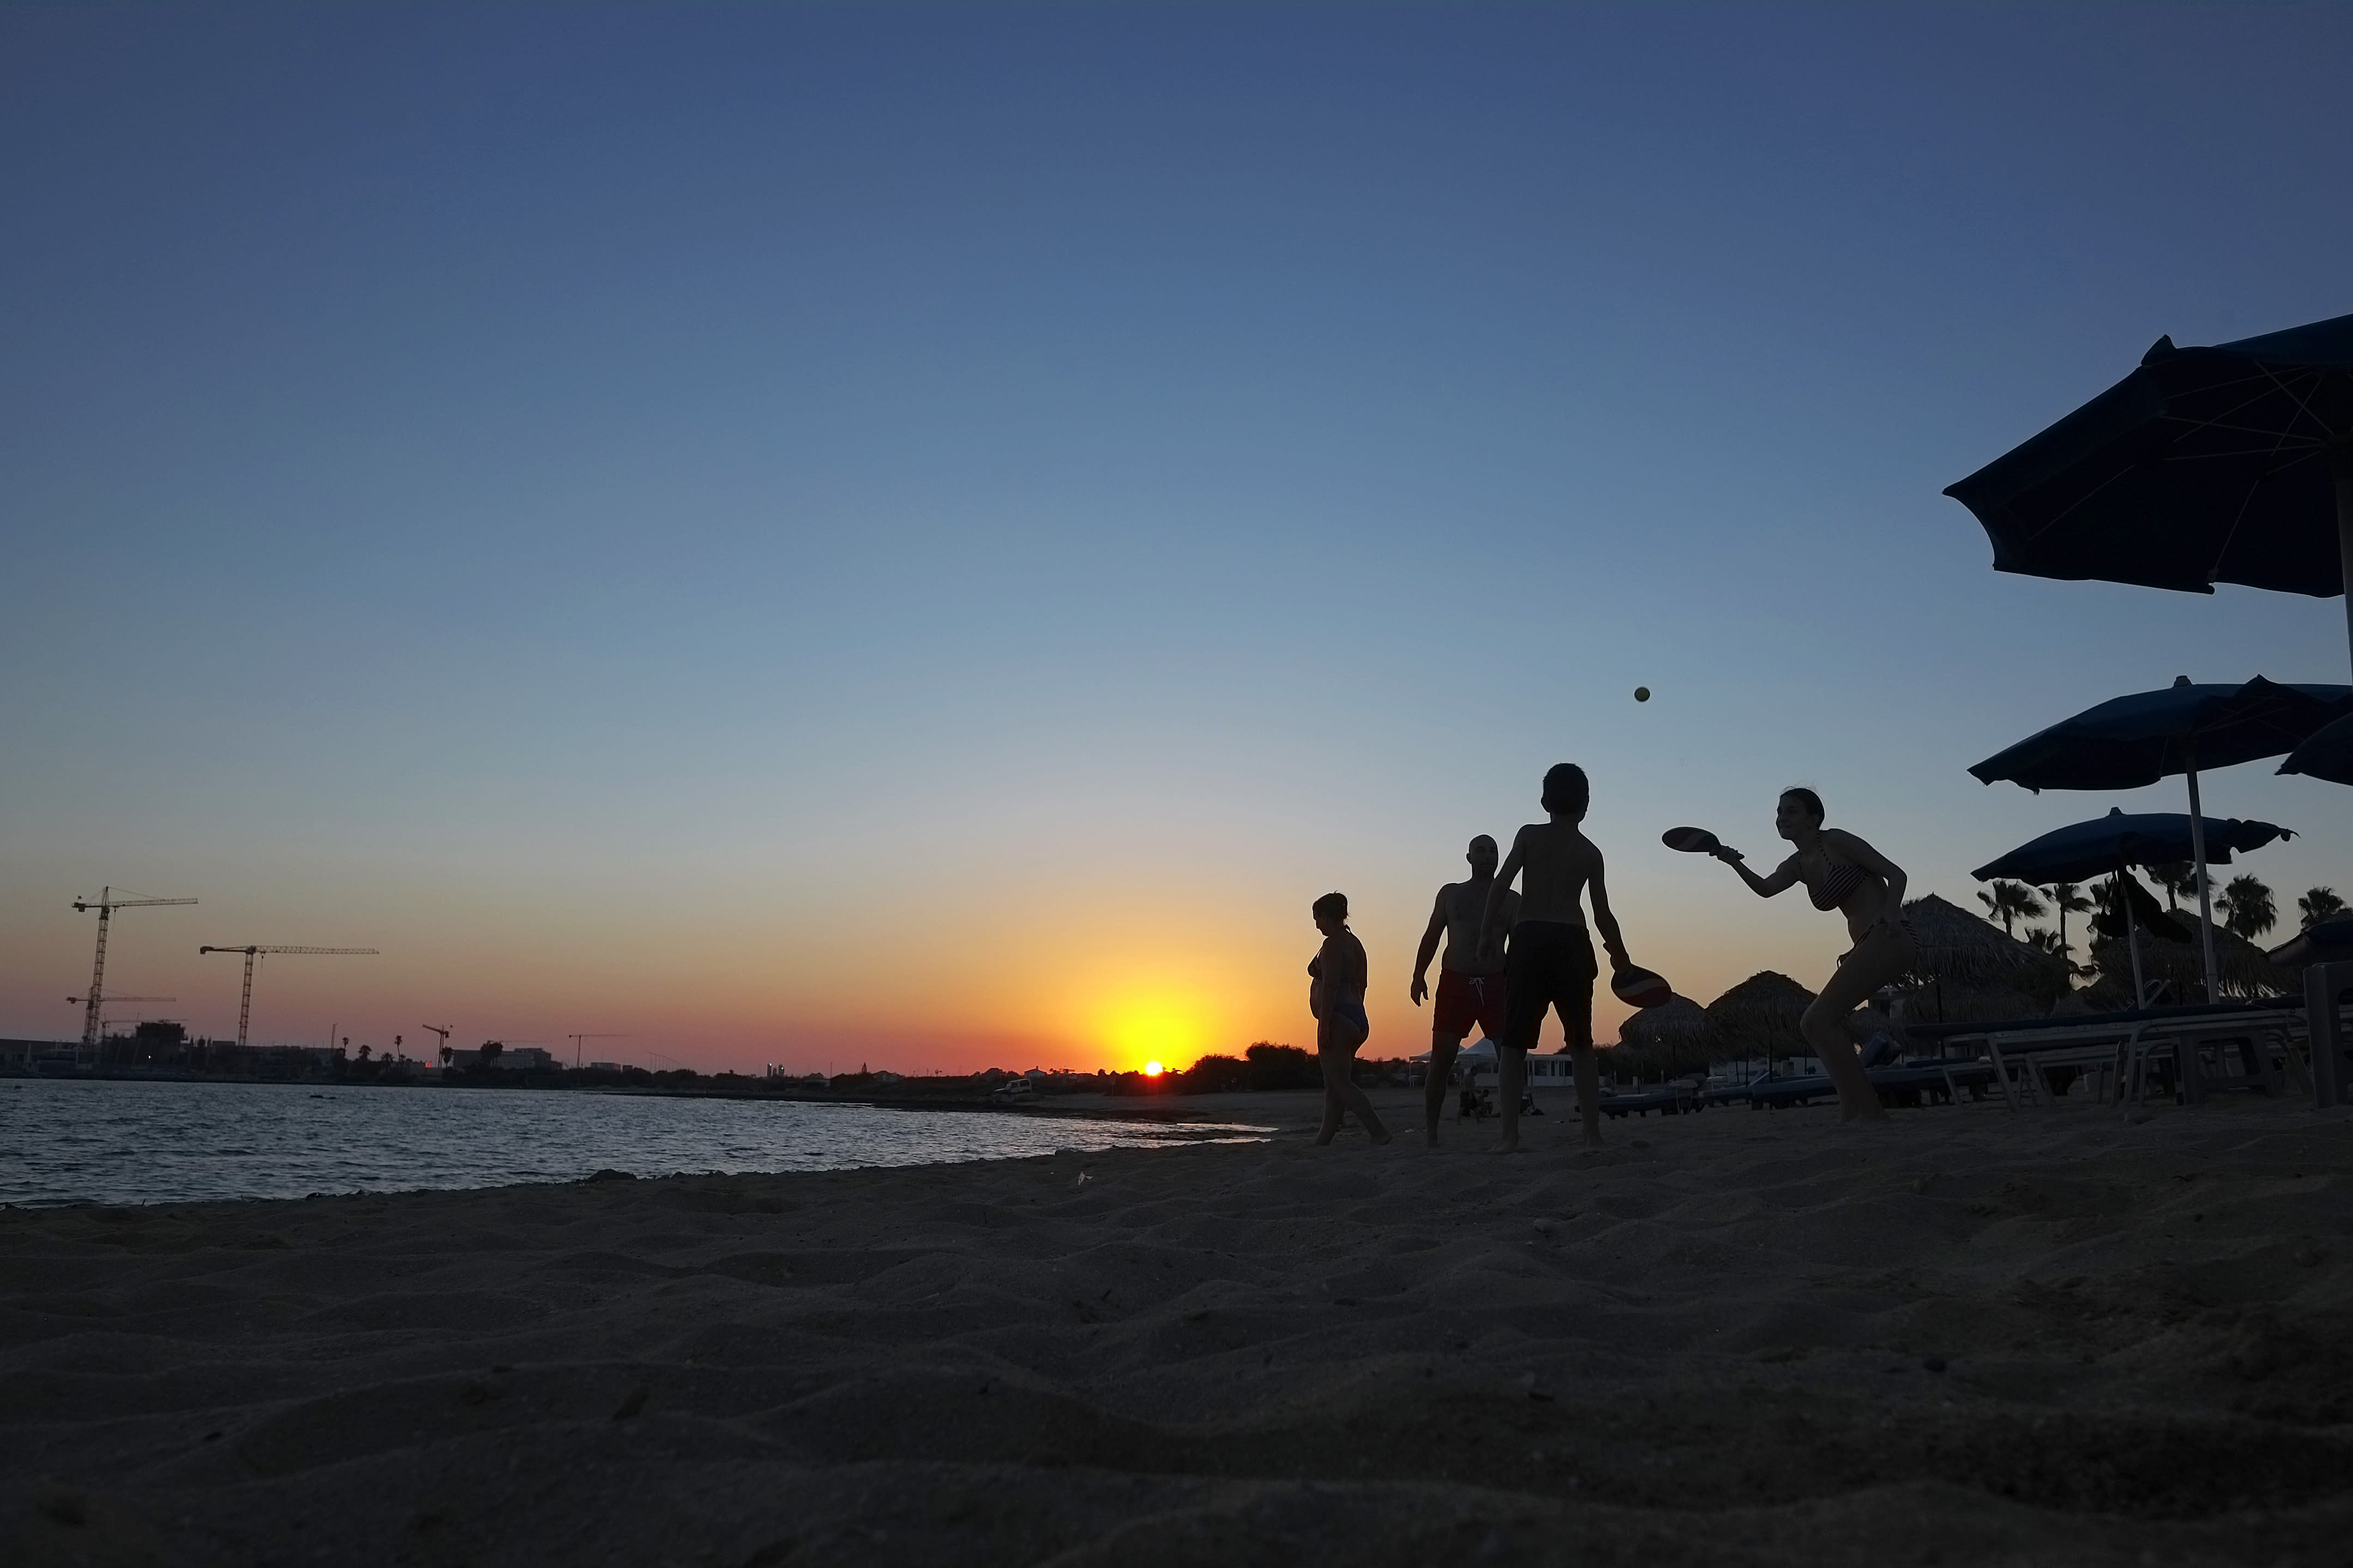 People play beach racket at the beach during sunset in coastal resort of Ayia Napa in the eastern Mediterranean island of Cyprus, Saturday, Aug. 22, 2020. Health Minister Constantinos Ioannou has extended until Jan. 15, 2021, a ban on outdoor festivals, concerts and exhibitions in places without seating where social distancing rules can't be enforced. (AP Photo/Petros Karadjias)